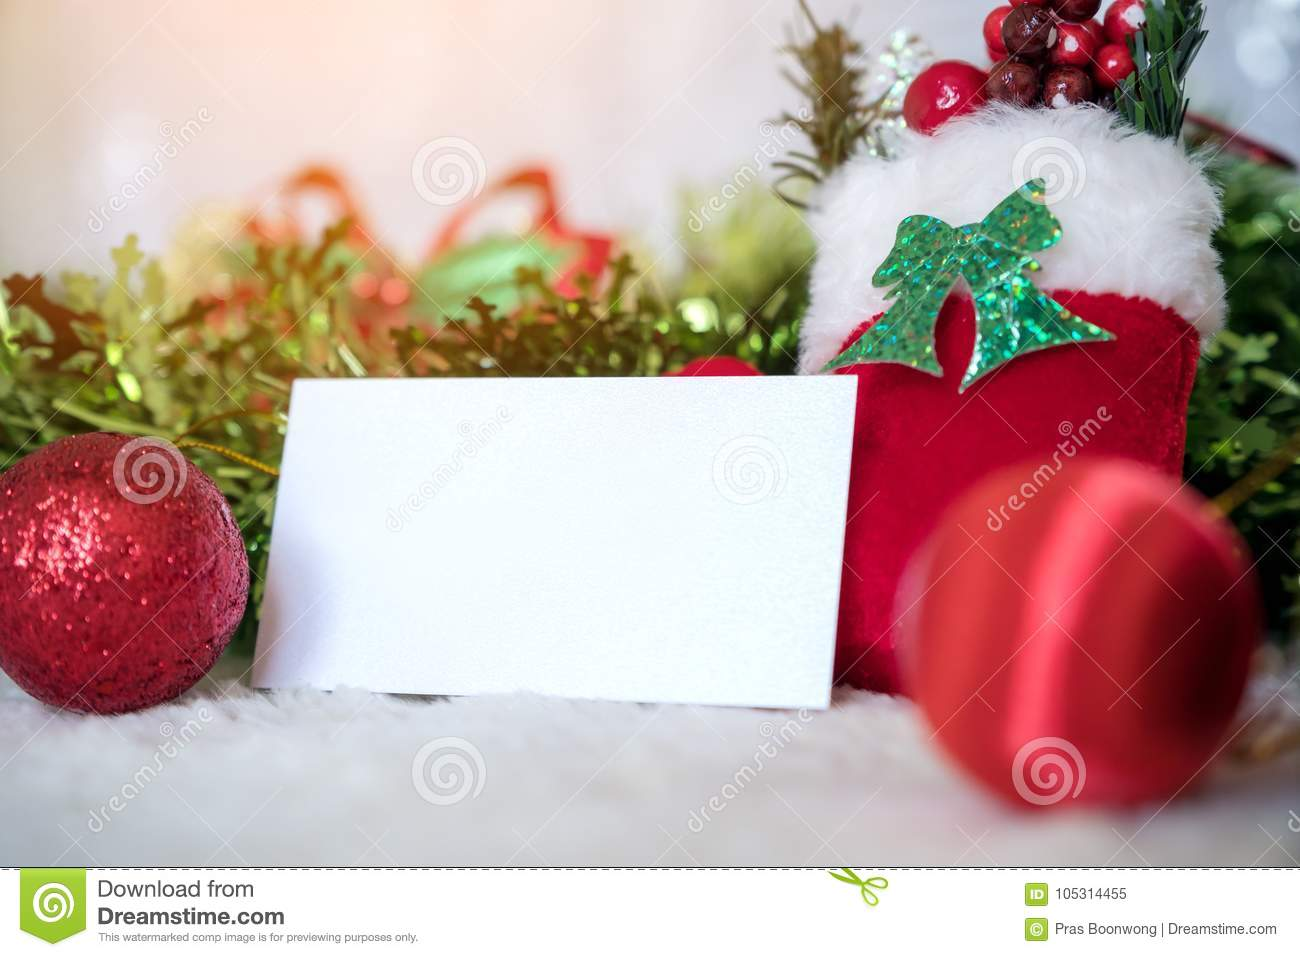 Mockup Image Of White Blank Name Card With Christmas Decorations Stock Image Image Of Concept Balls 105314455